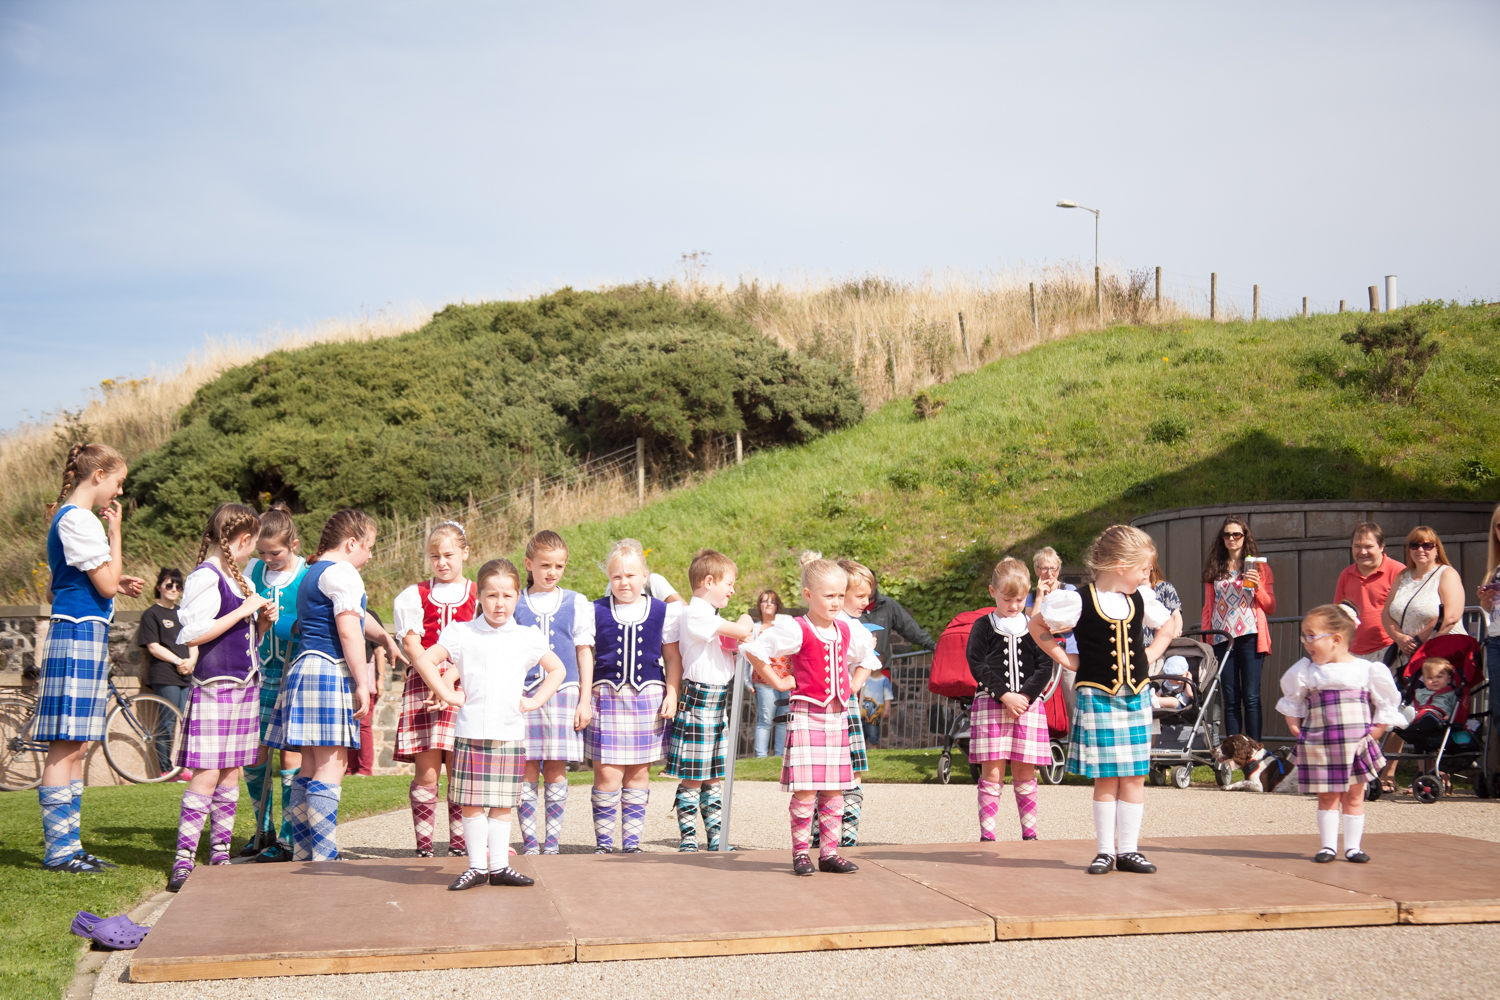 PICTORIAL_BERWICK_eyemouth-gunsgreen-extravaganza-photography-entertainment-party-event-photographer-harbour-gary-dunn-dancers-stilts-performances-speeches-day-out-summer-4586.jpg